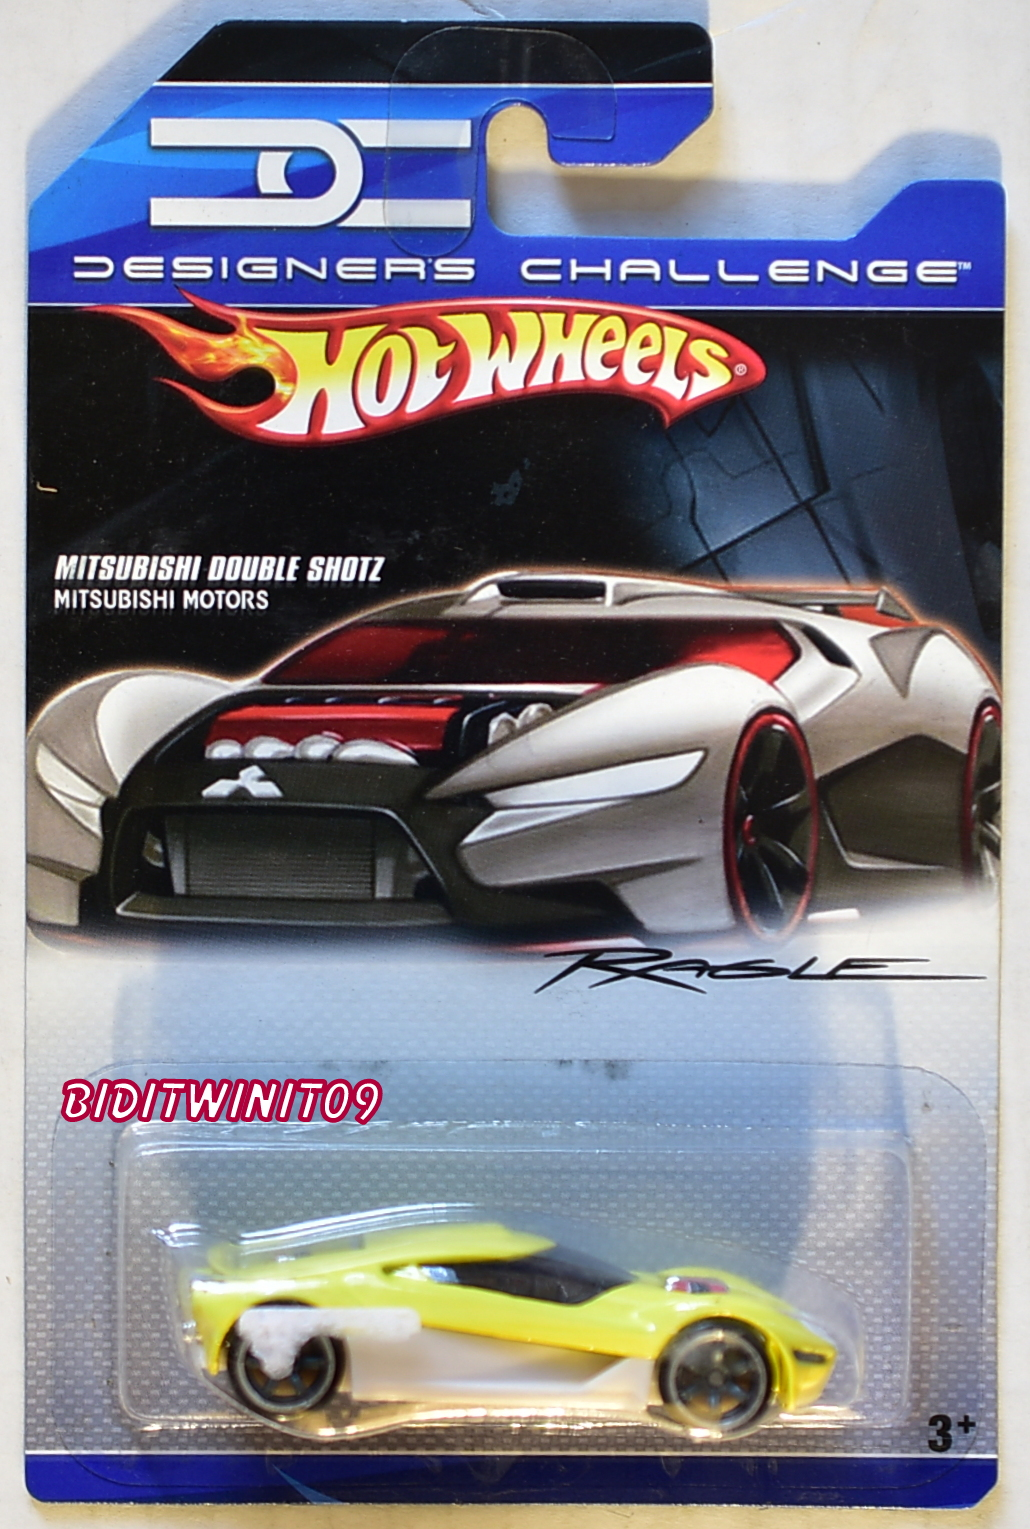 HOT WHEELS 2007 DESIGNERS CHALLENGE MITSUBISHI DOUBLE SHOTZ YELLOW